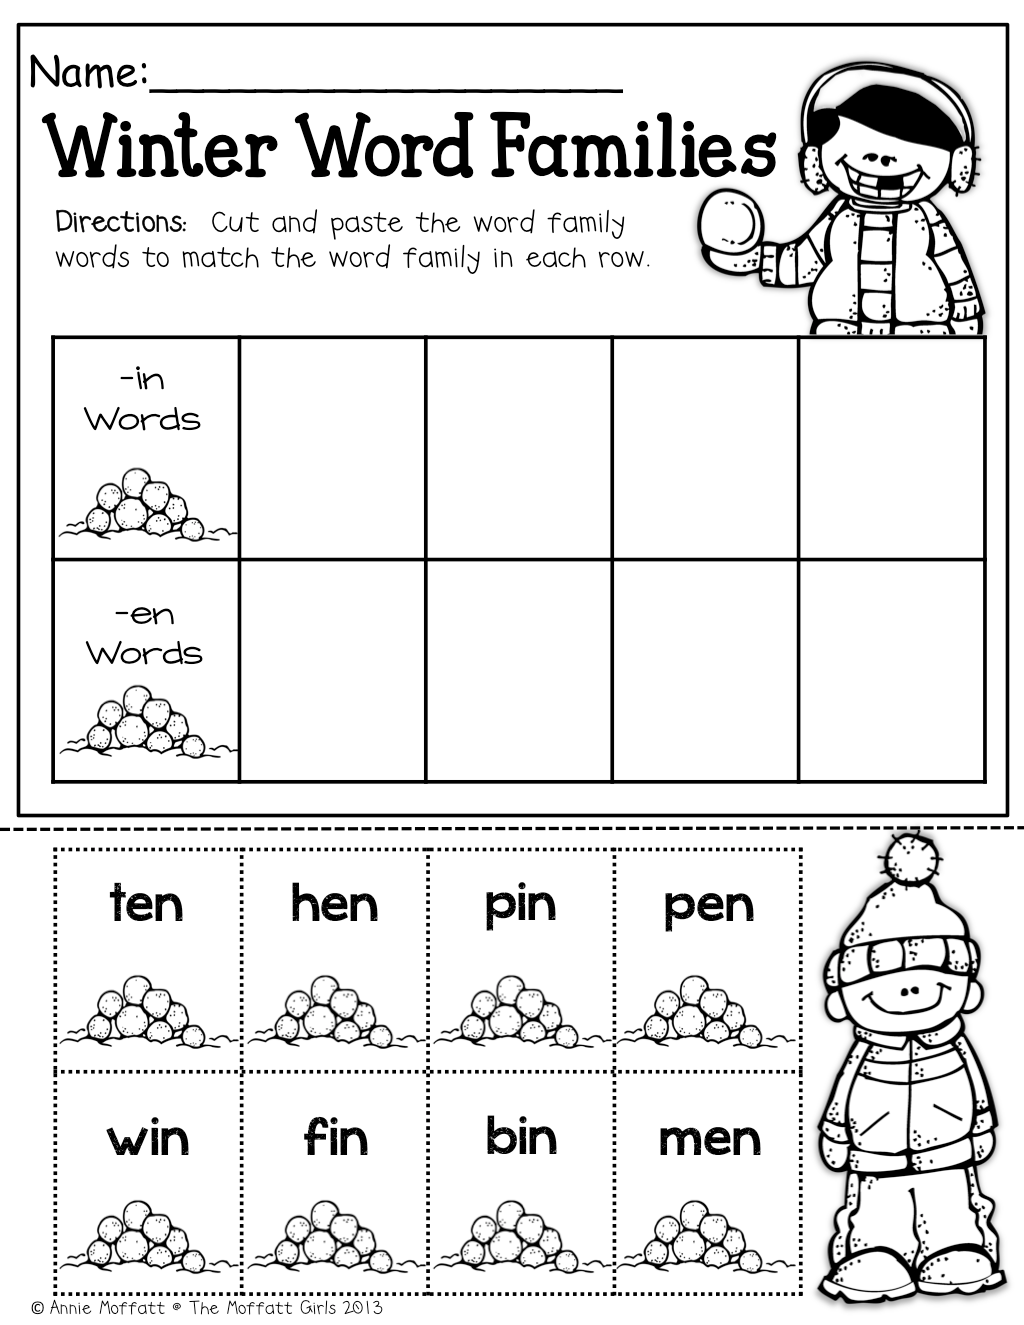 Winter Word Families Great Way To Practice Simple Cvc